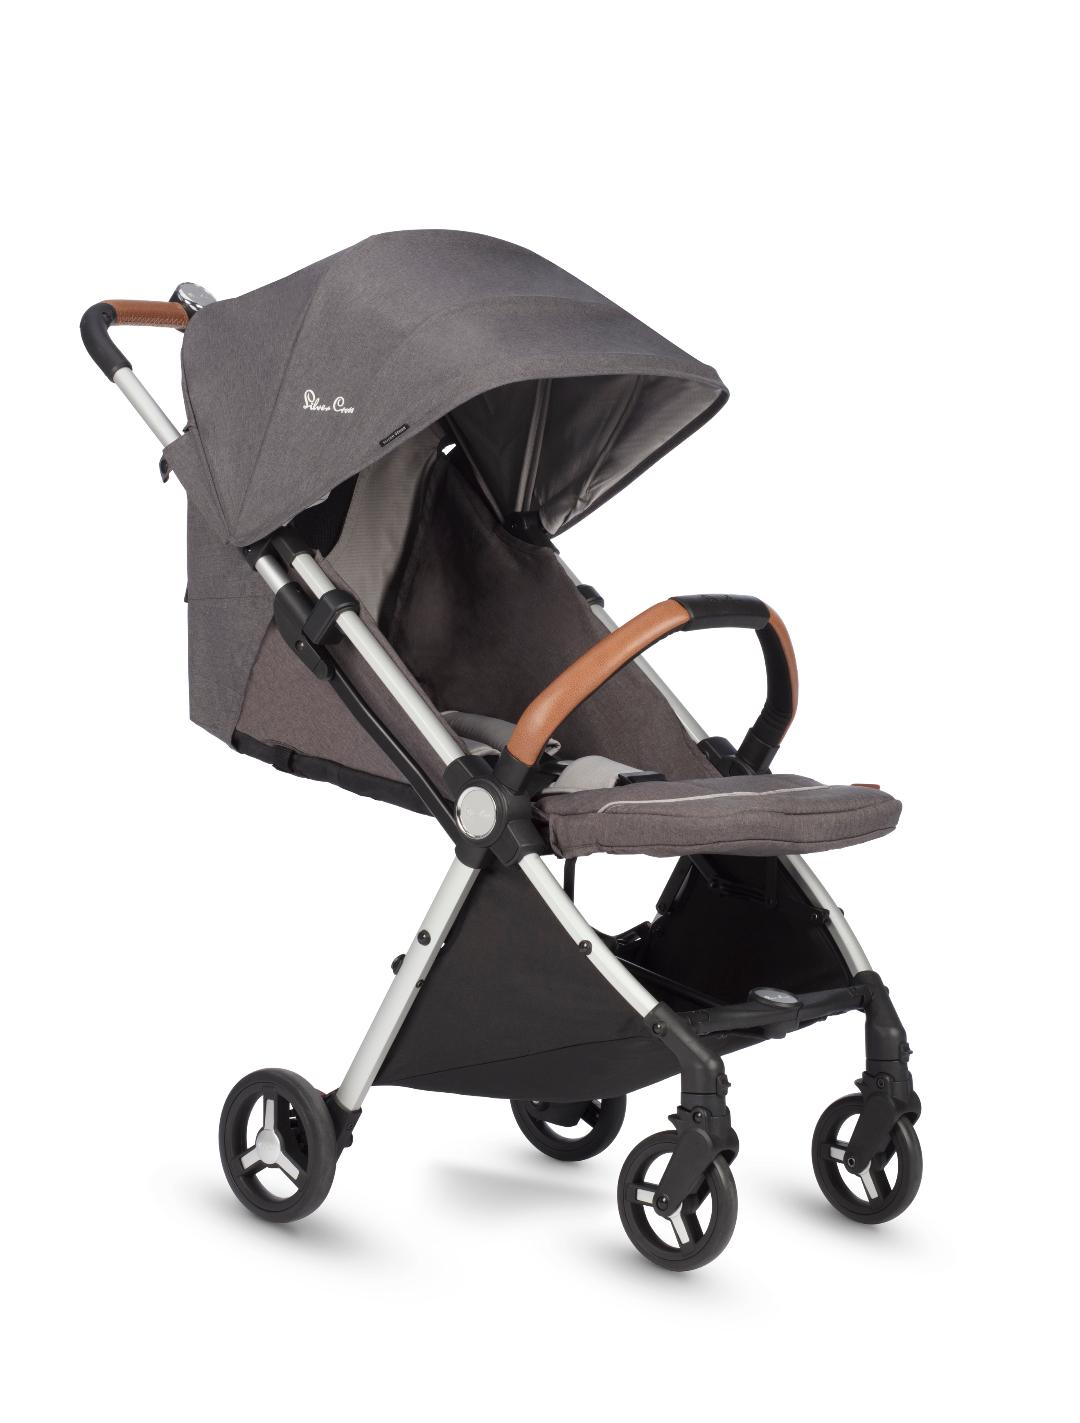 f7c7825c1e9 Silver Cross plans to launch the Special Edition version of their brand new  Jet travel stroller the first week of October. Like the regular edition Jet